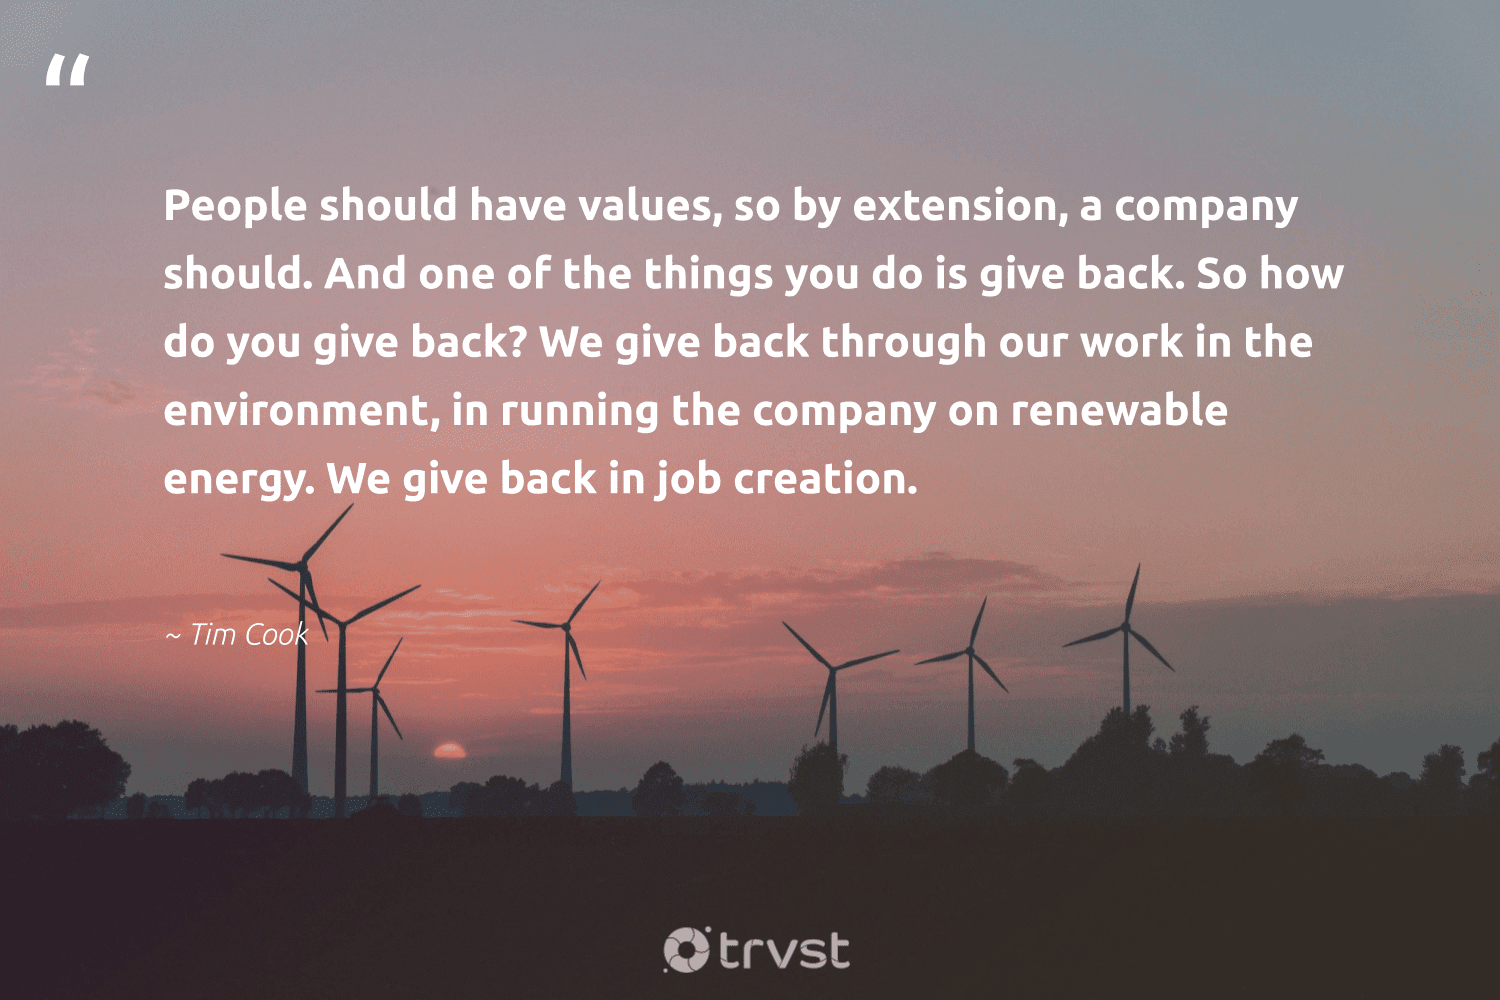 """""""People should have values, so by extension, a company should. And one of the things you do is give back. So how do you give back? We give back through our work in the environment, in running the company on renewable energy. We give back in job creation.""""  - Tim Cook #trvst #quotes #renewableenergy #environment #energy #renewable #giveback #switchfuelenergy #greenenergy #planetearth #greenlife #dosomething"""